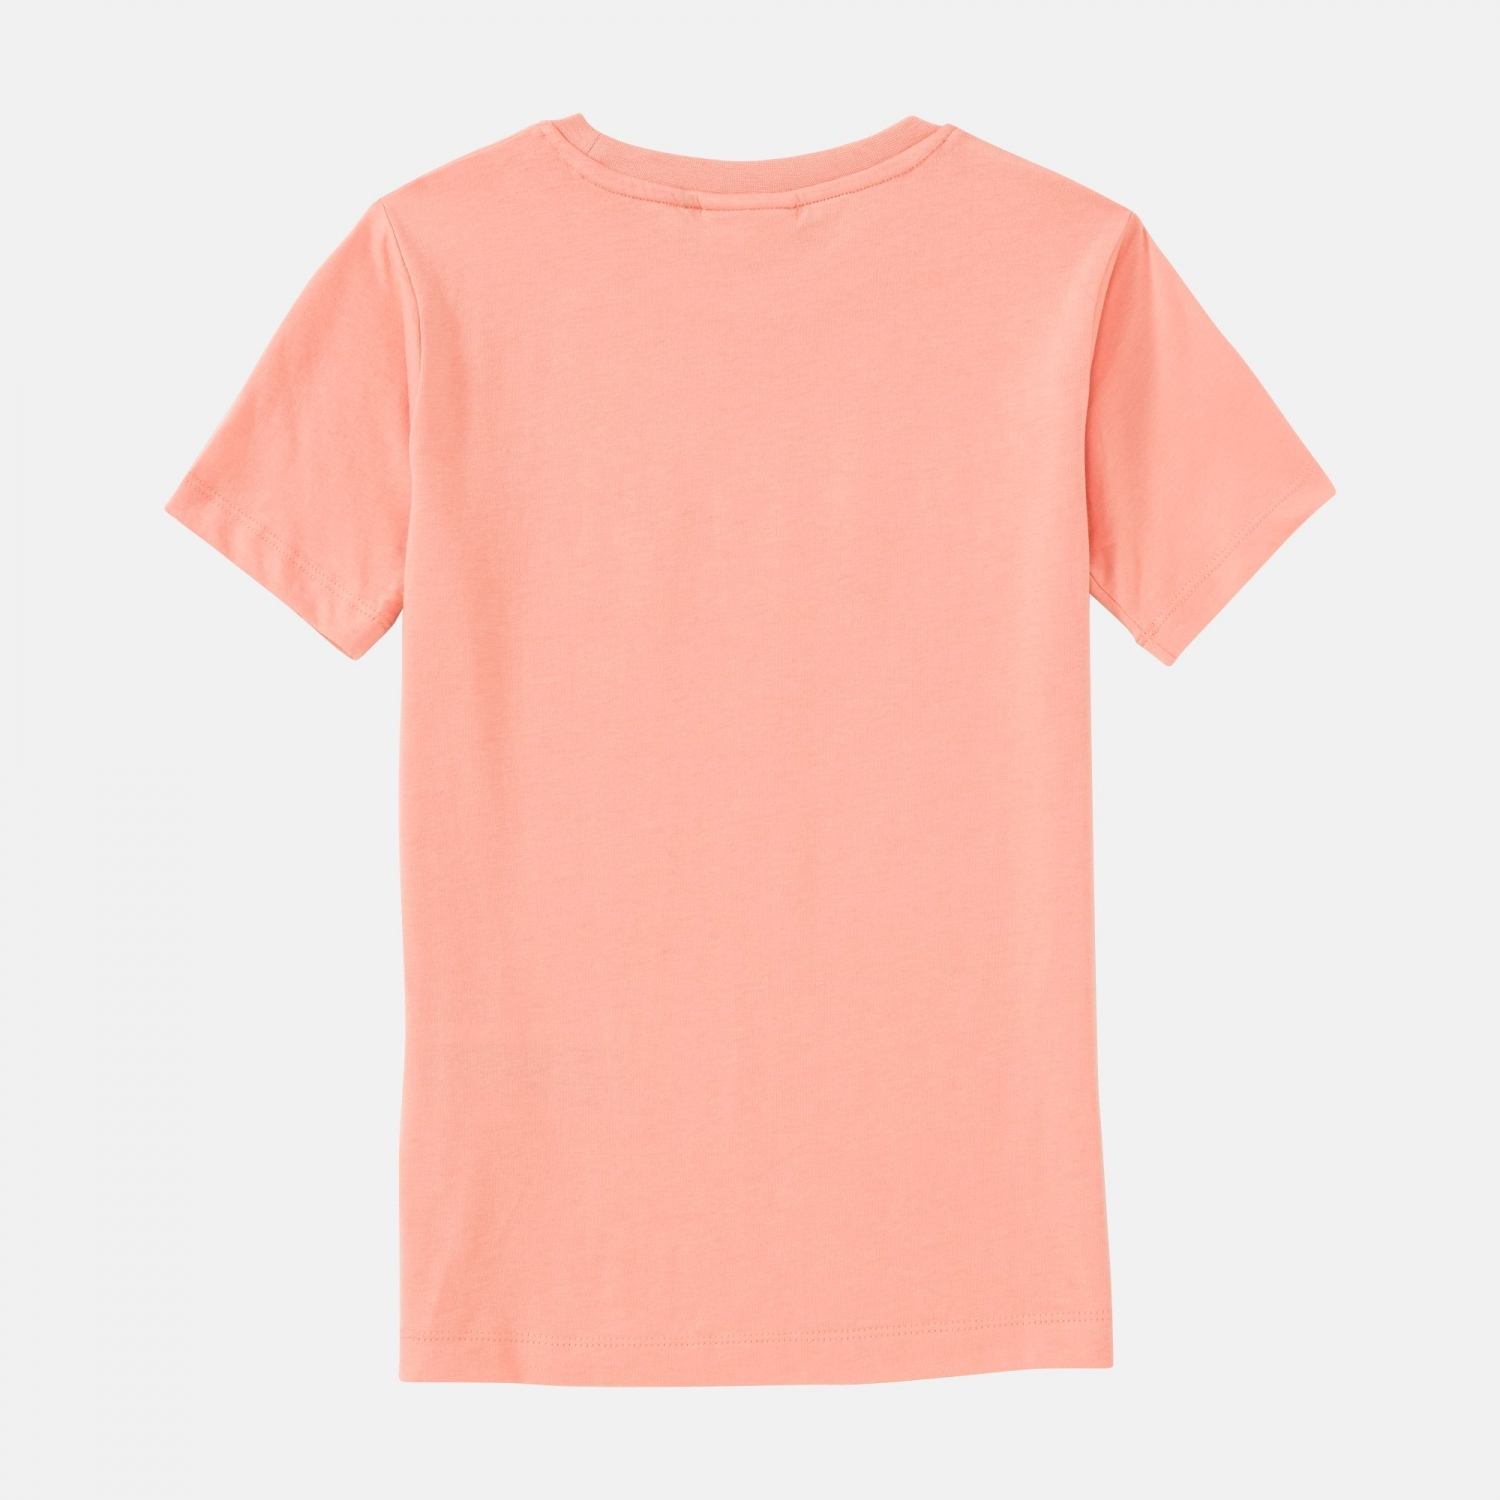 Fila Kids Classic Logo Tee lobster-bisque Bild 2